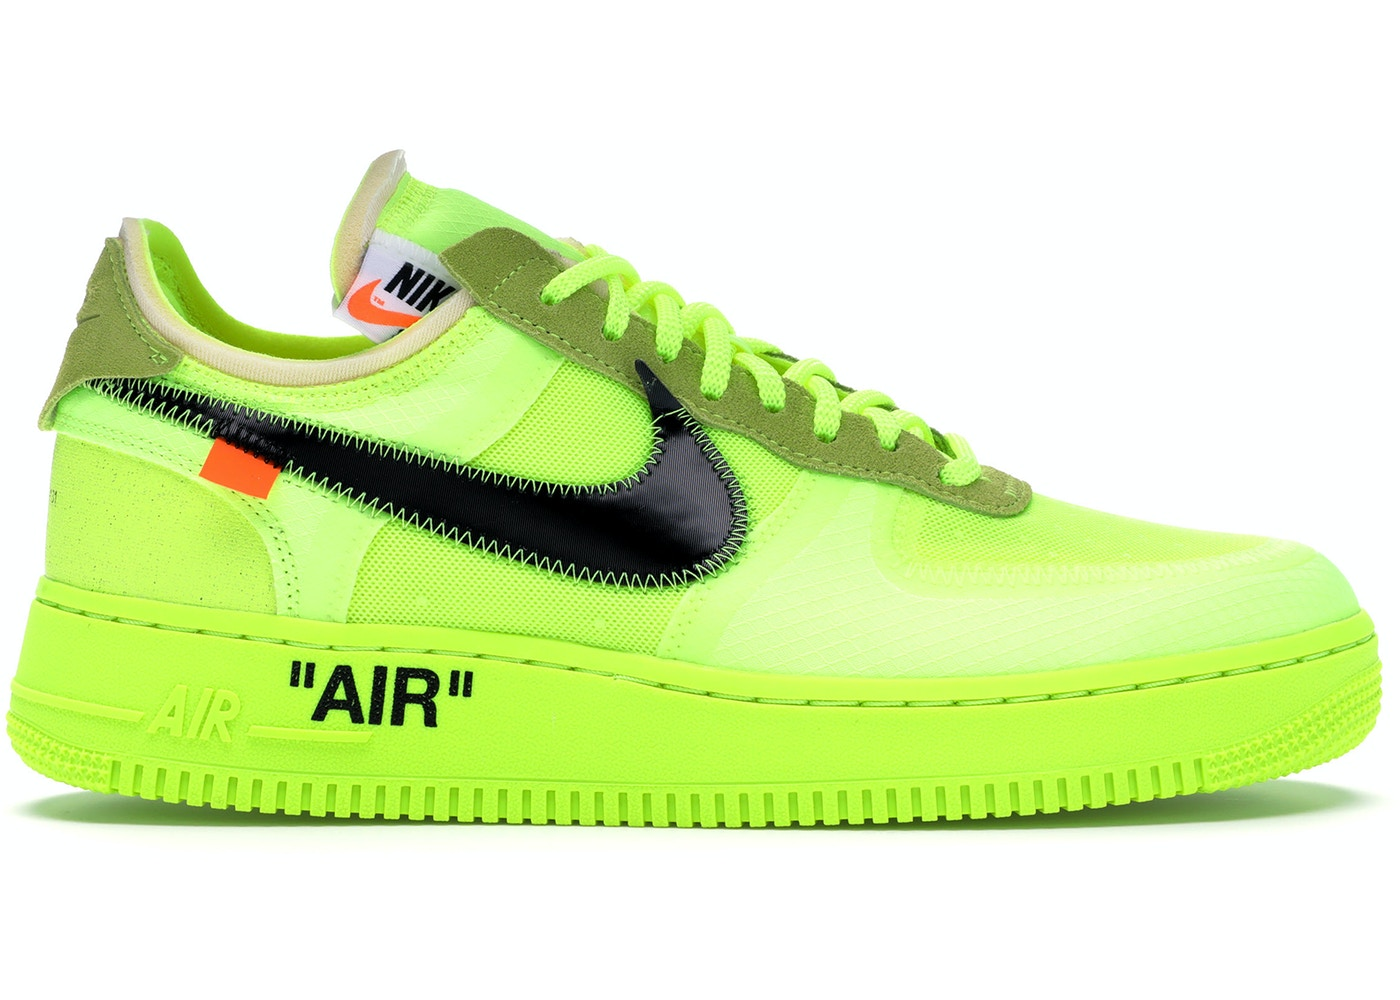 wholesale dealer 6fbb5 32e1d Air Force 1 Low Off-White Volt - AO4606-700